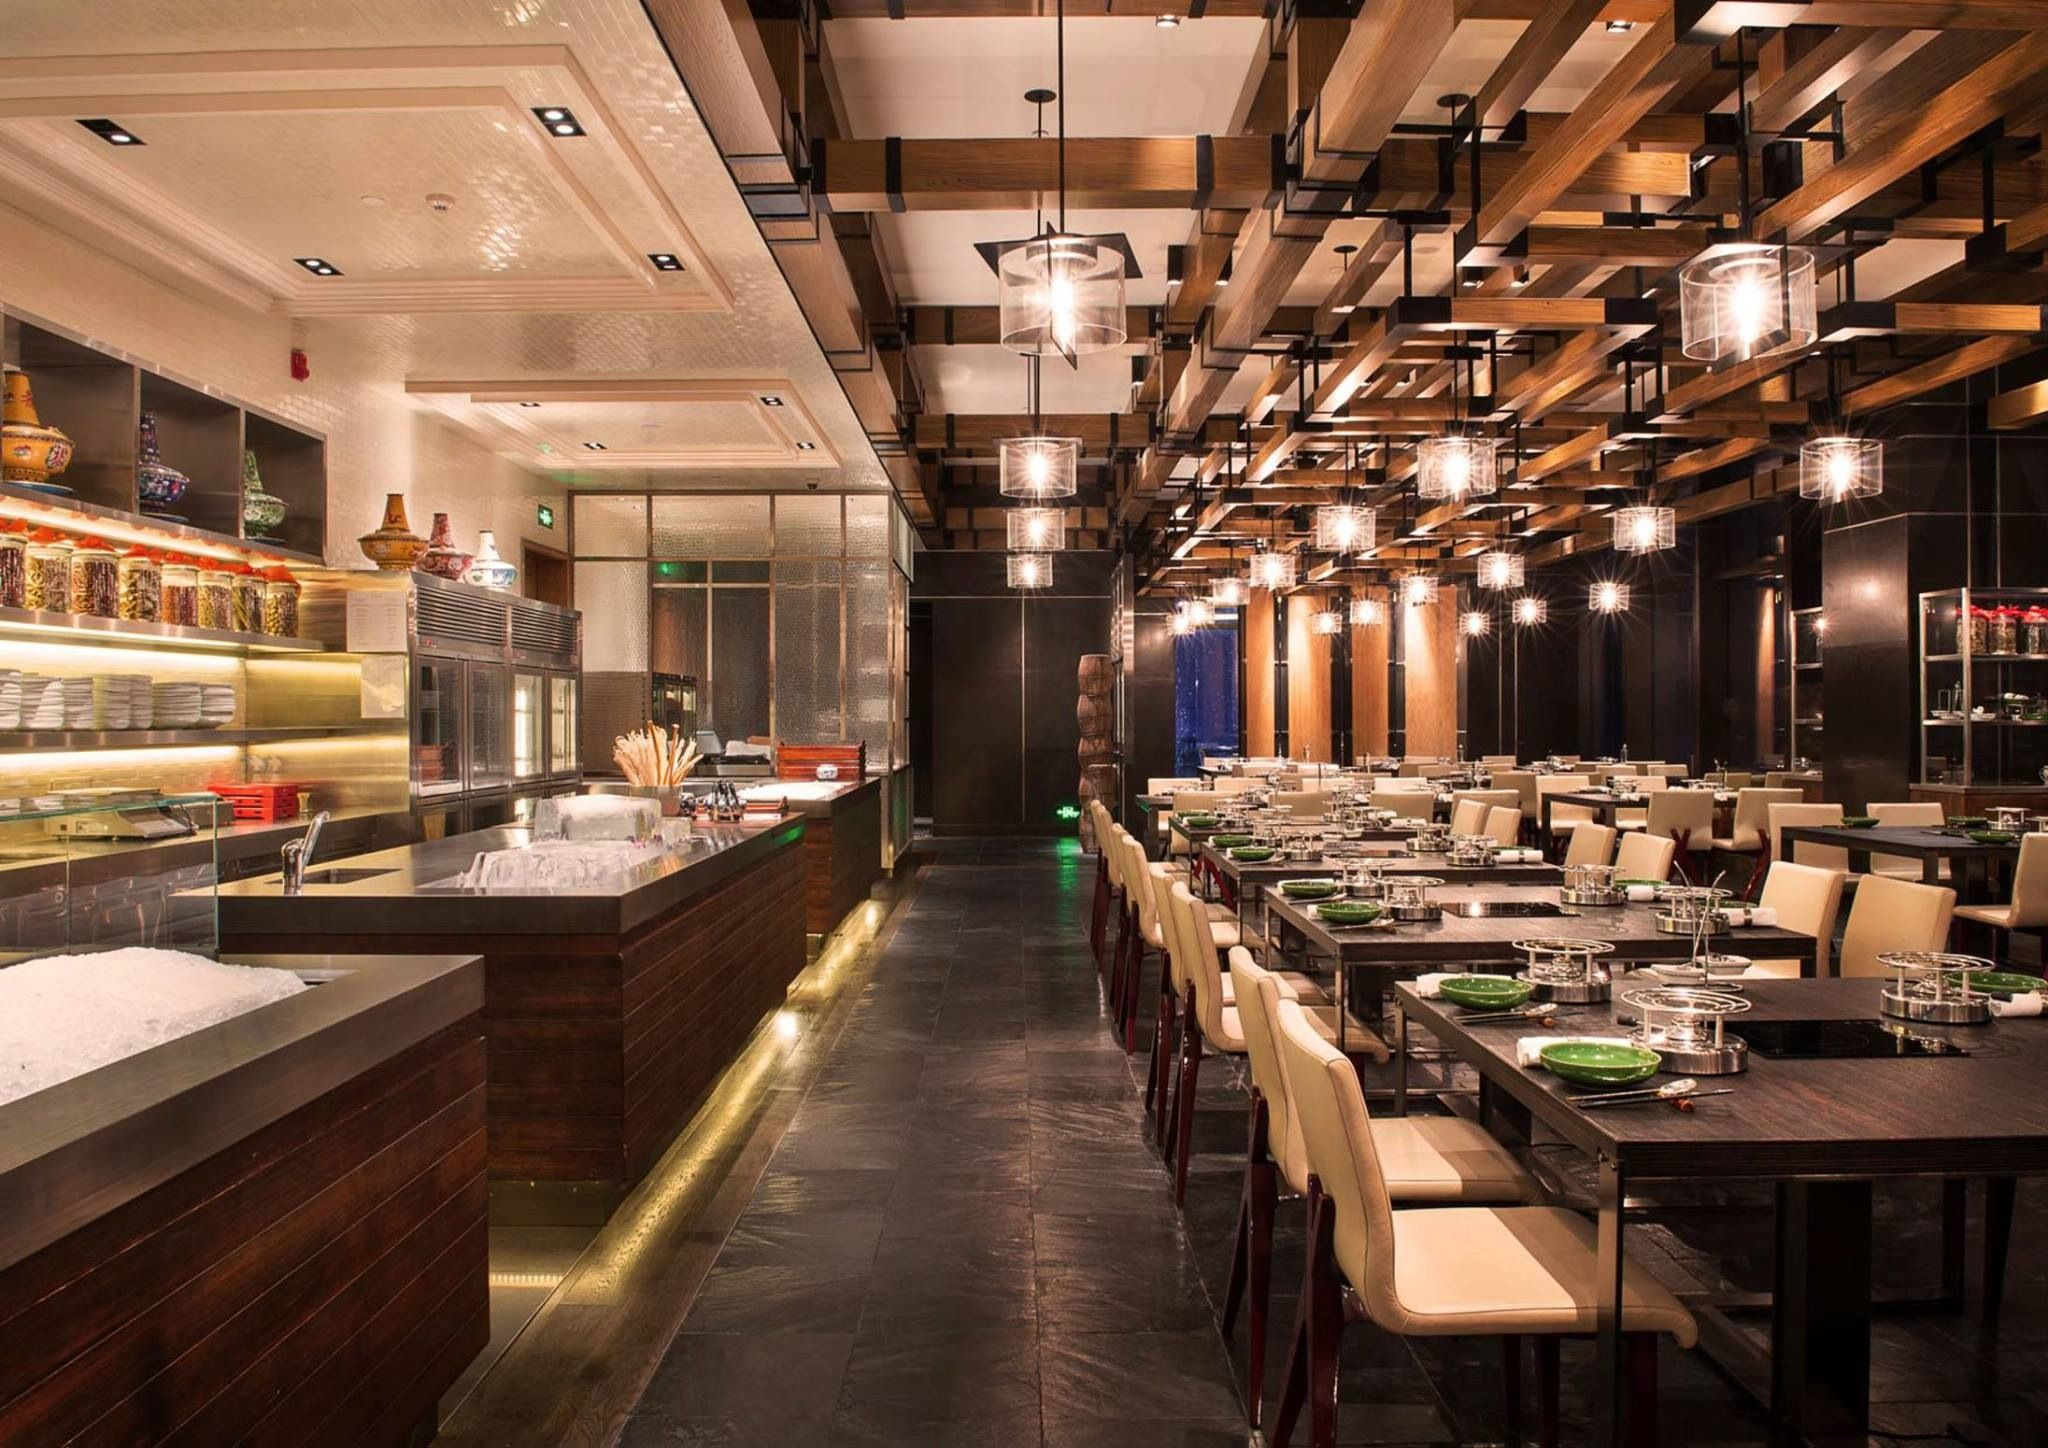 Hotpot Restaurant, Cafe Restaurant, Cafe Bar, Restaurant Design, Commercial Kitchen